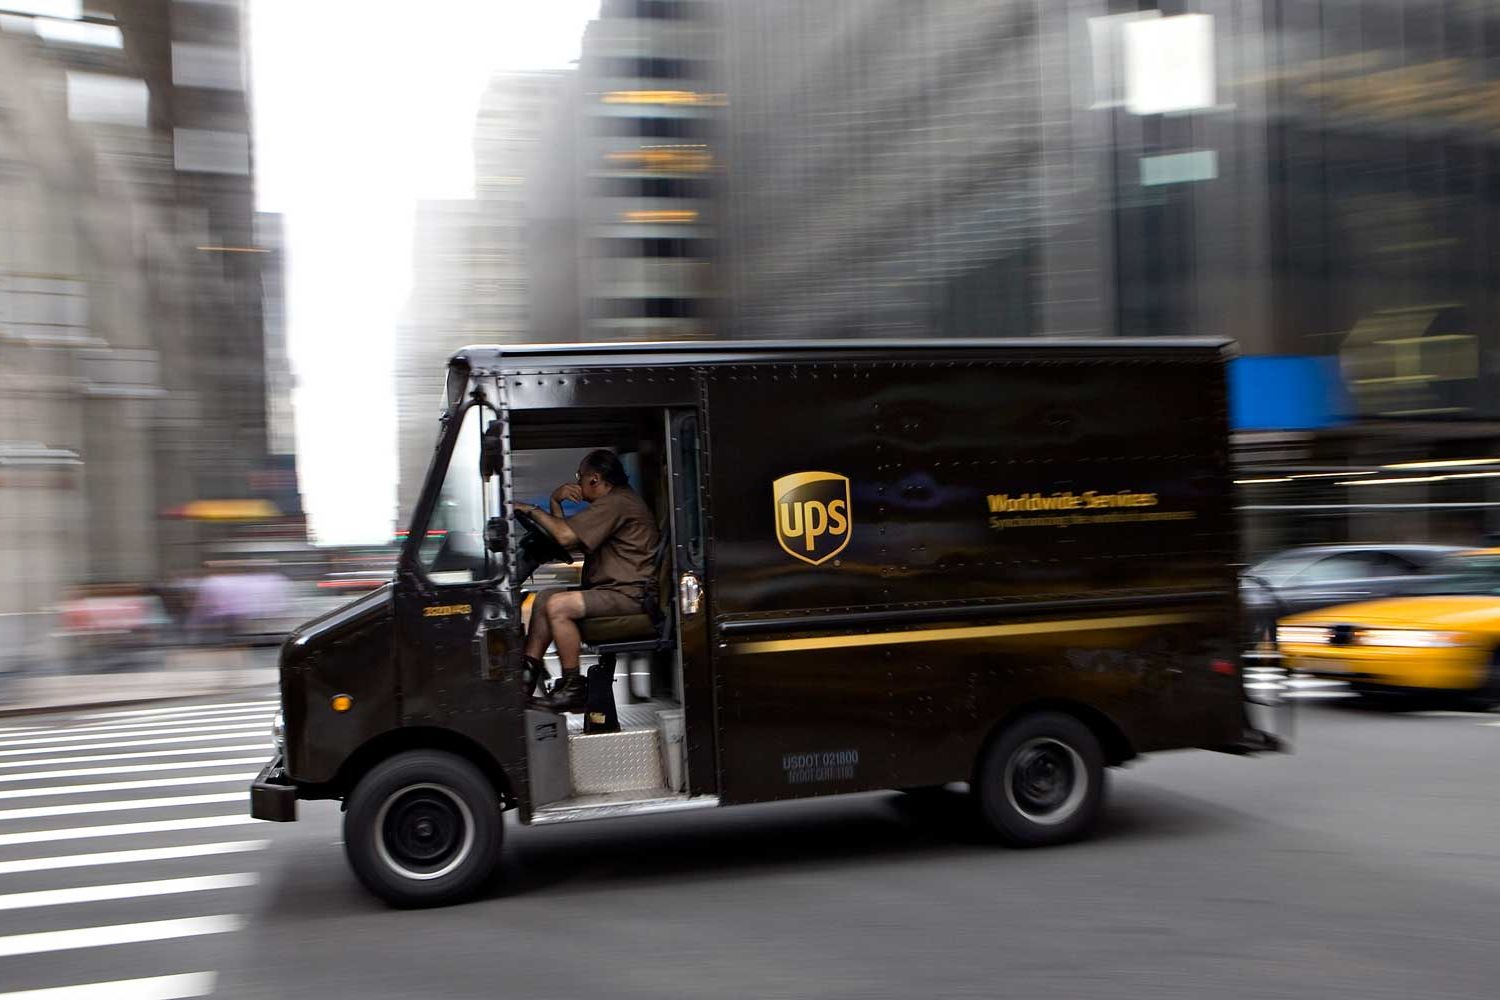 UPS Drivers Never Turn Left, and Neither Should You